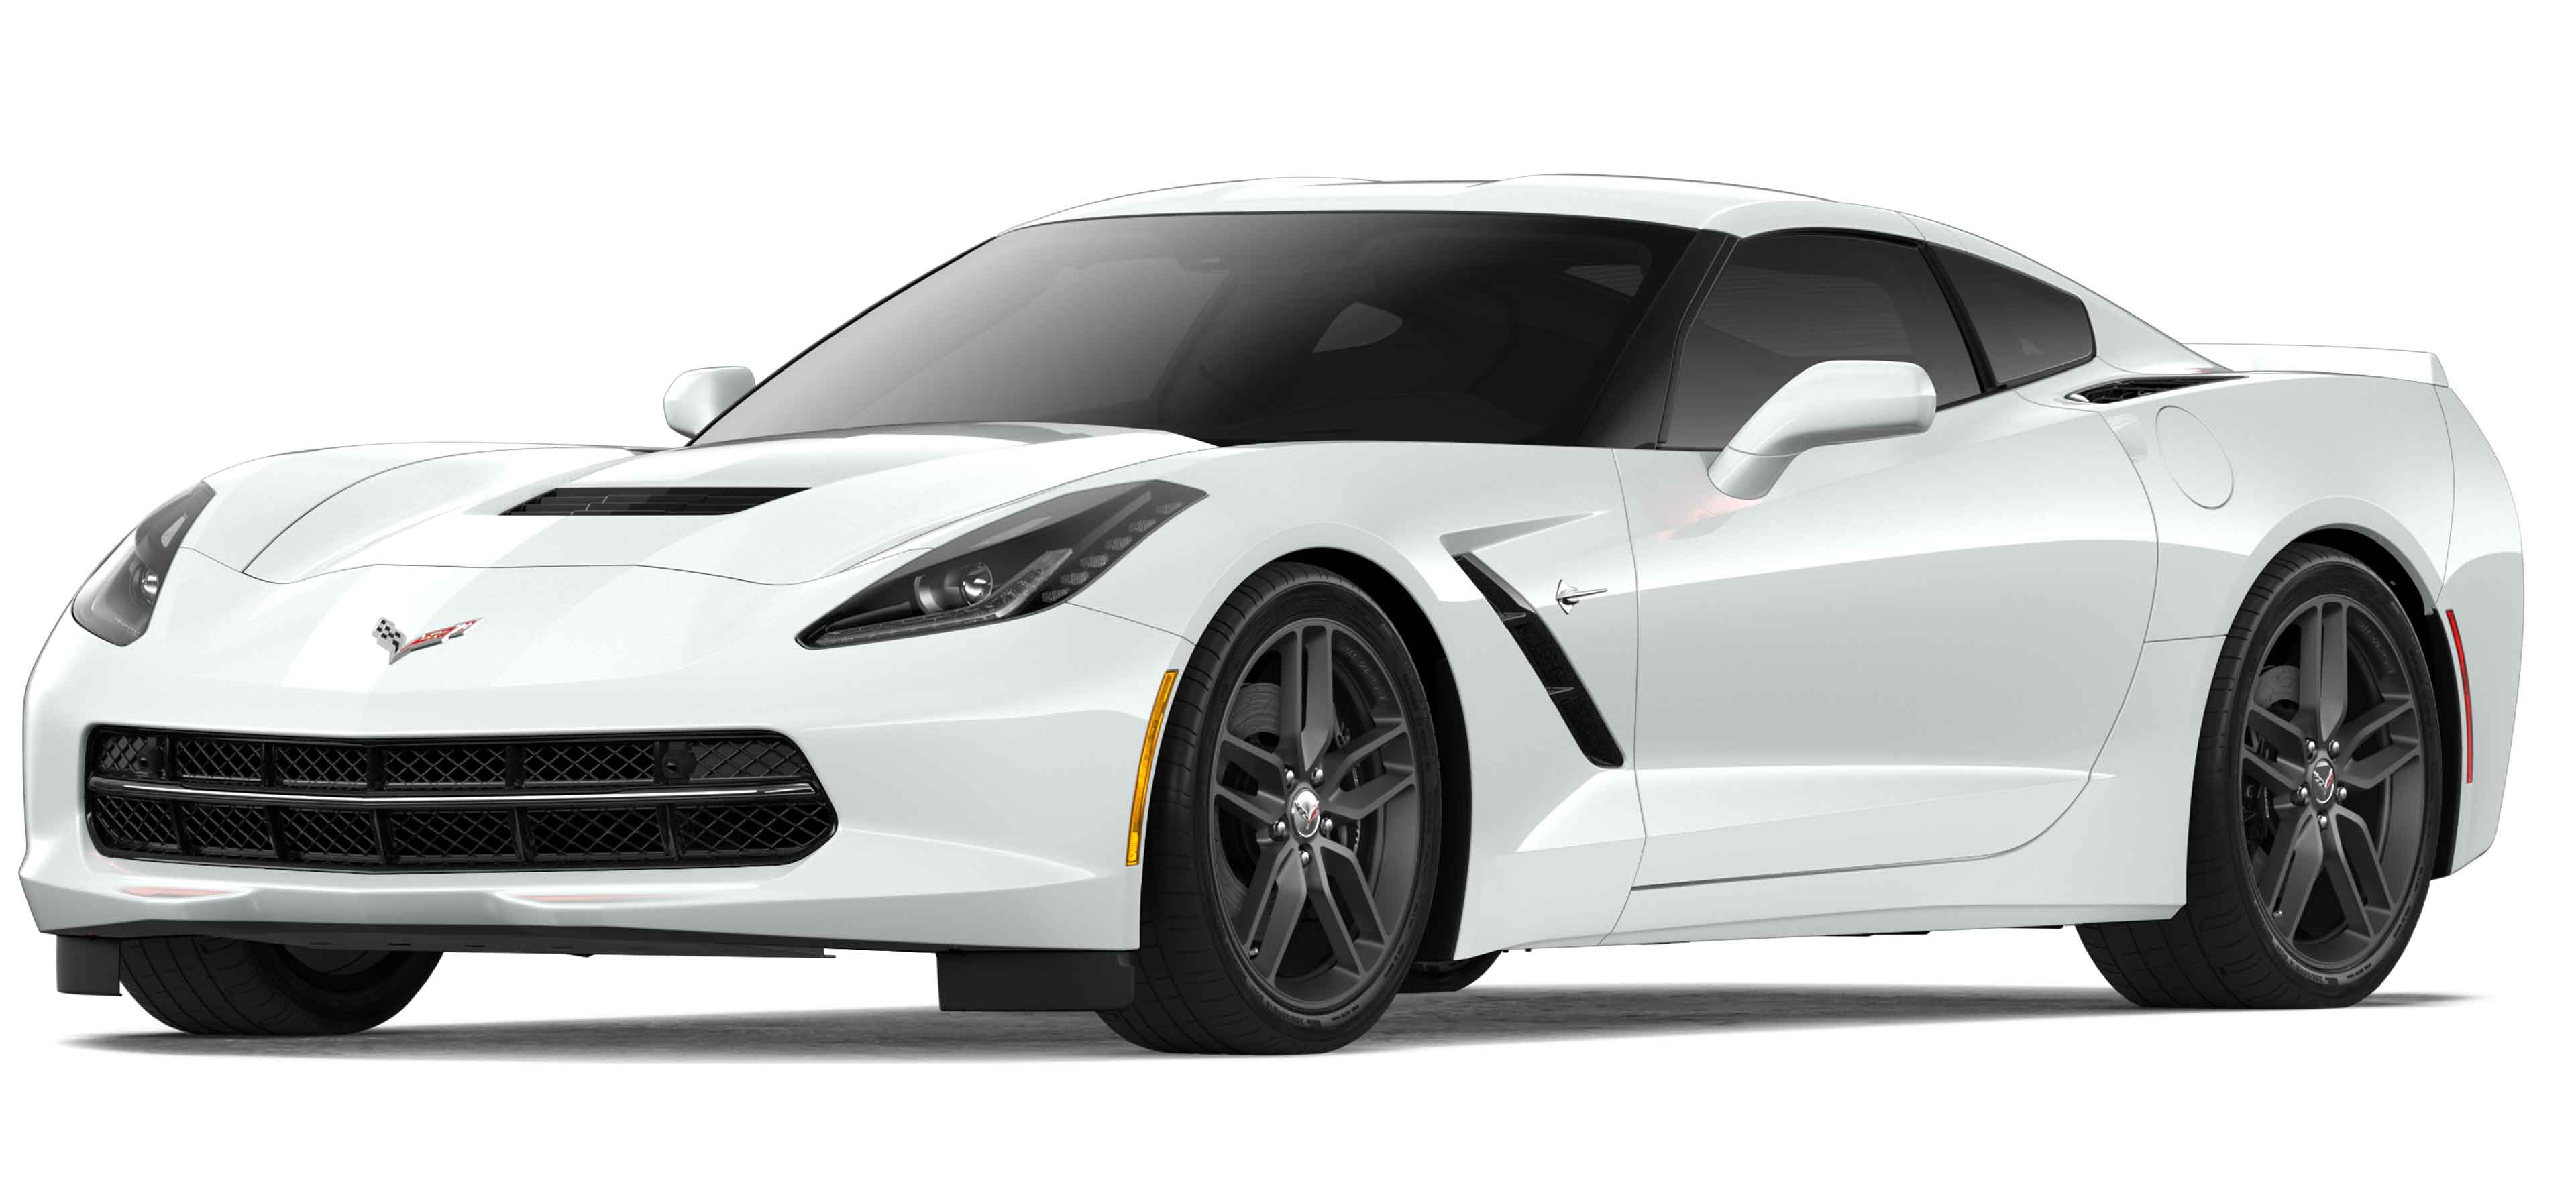 Used Cars Seattle >> Search Chevrolet Corvette Seattle dealer | Chevrolet Corvette Renton